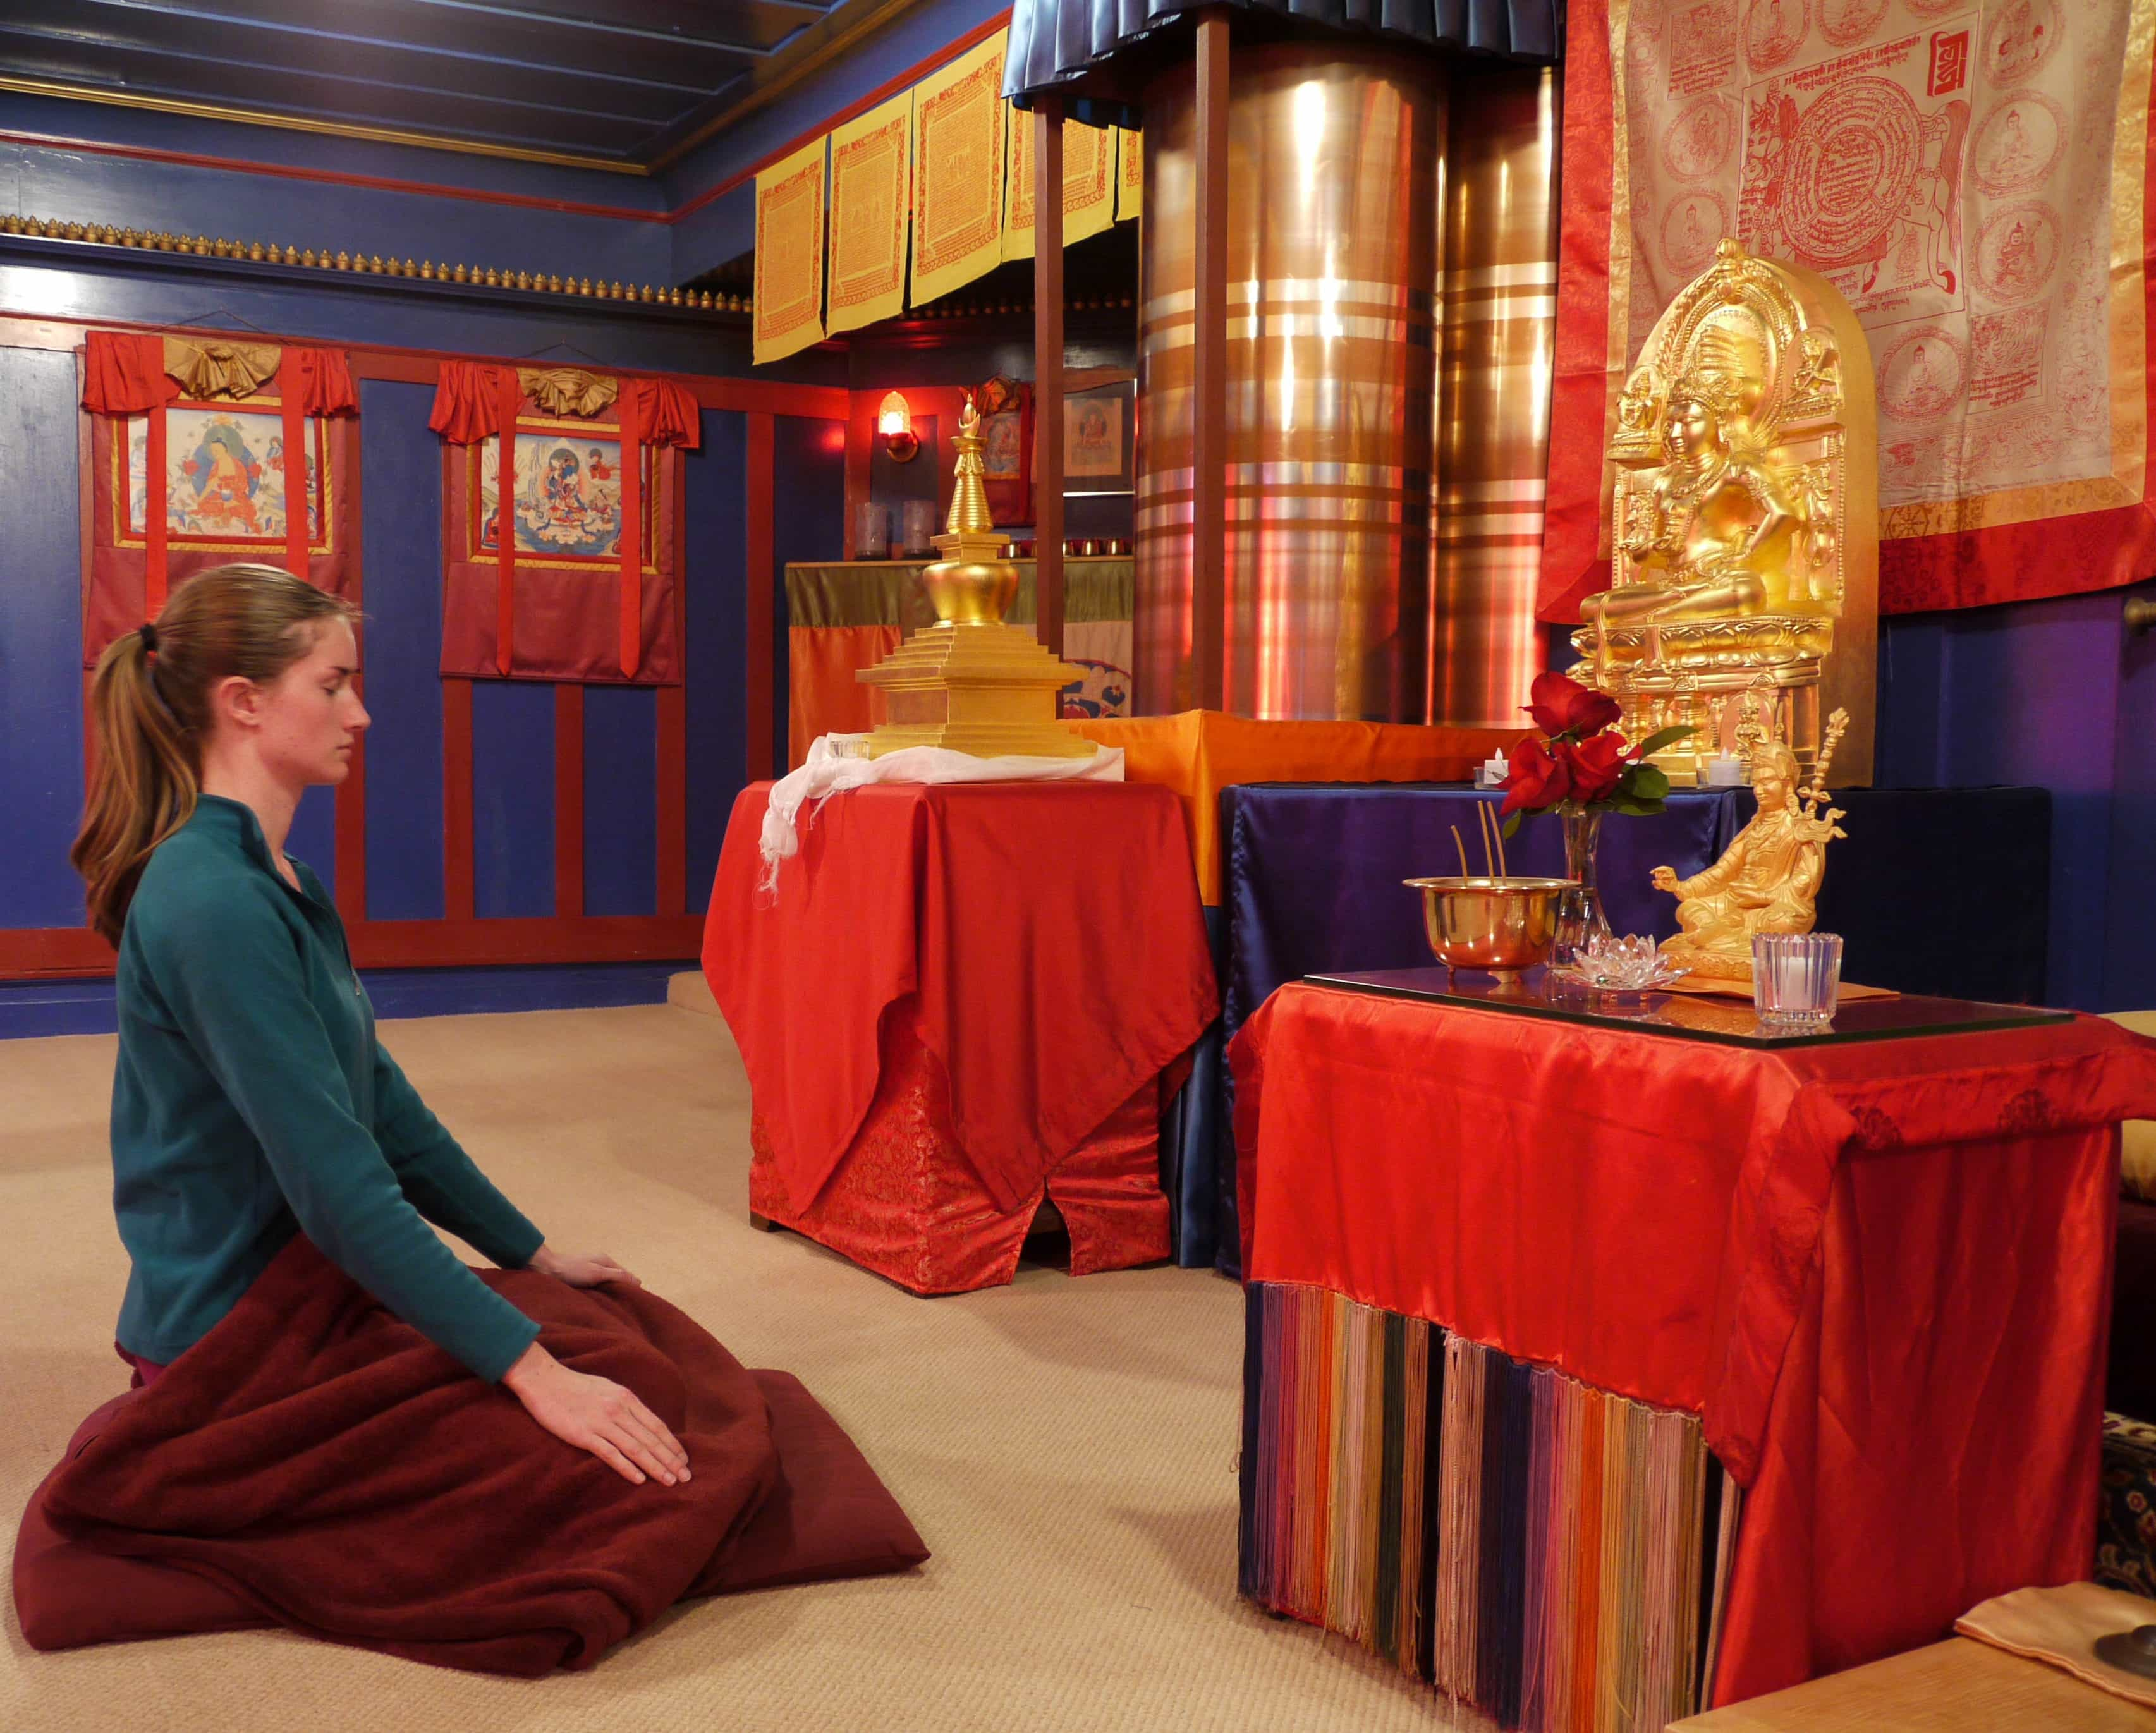 Image of the Meditation Room